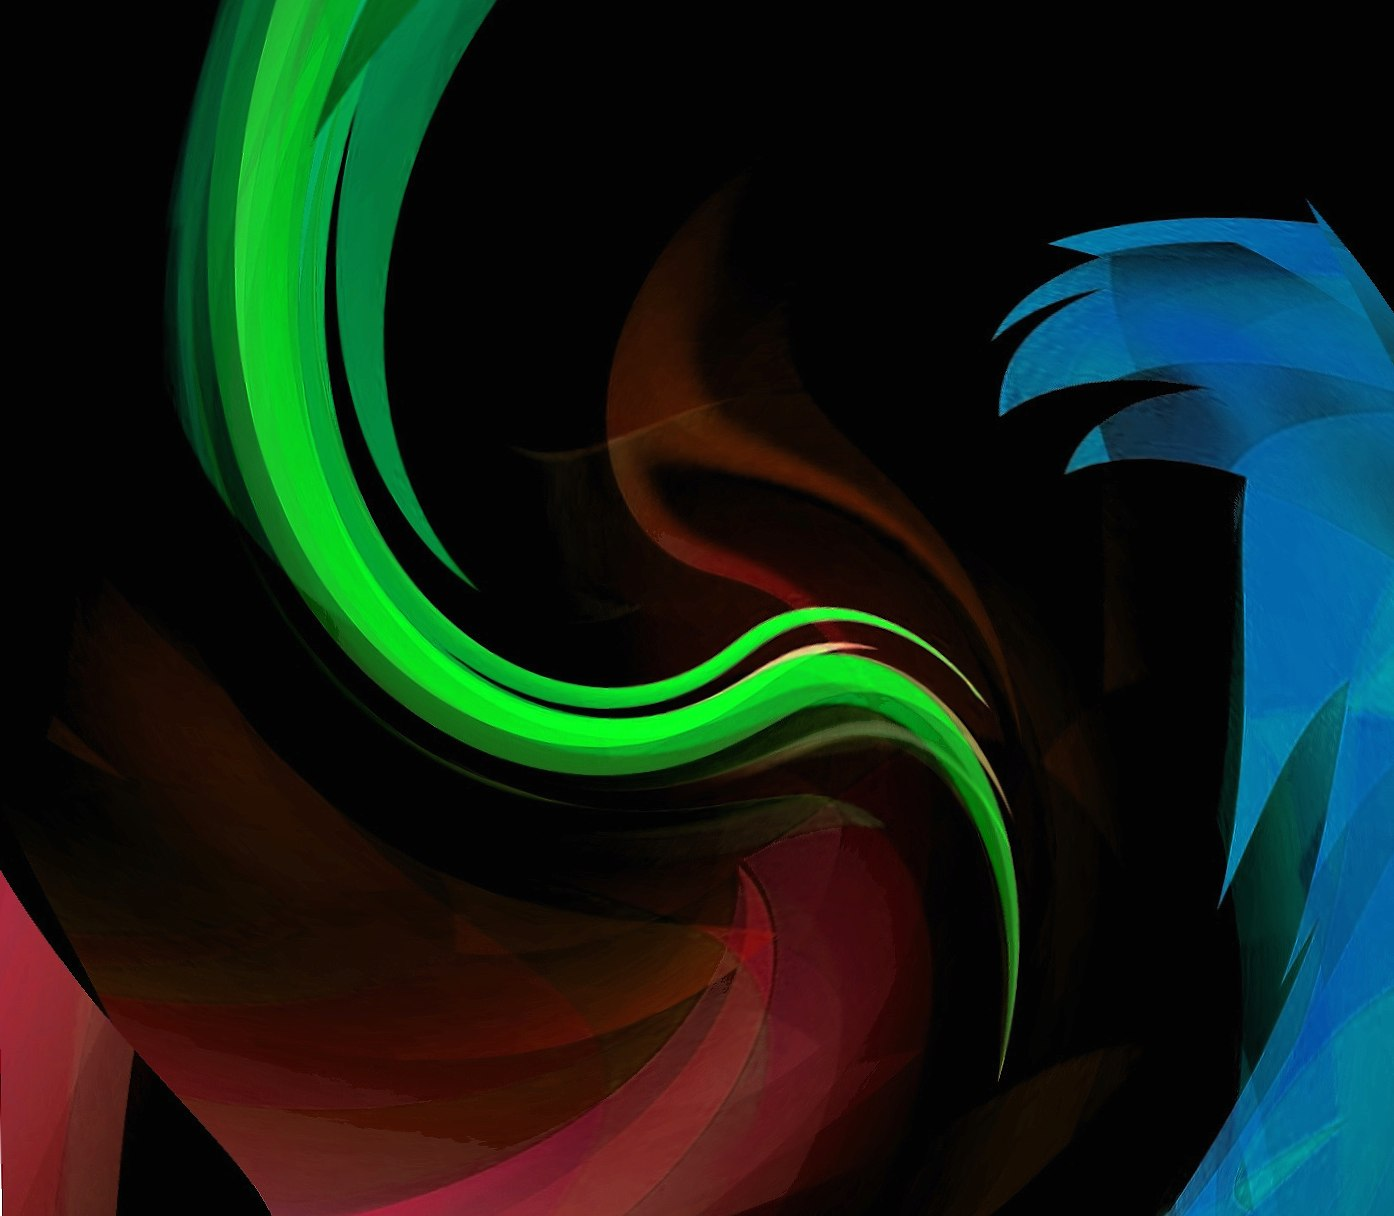 Colorabstract wallpapers HD quality